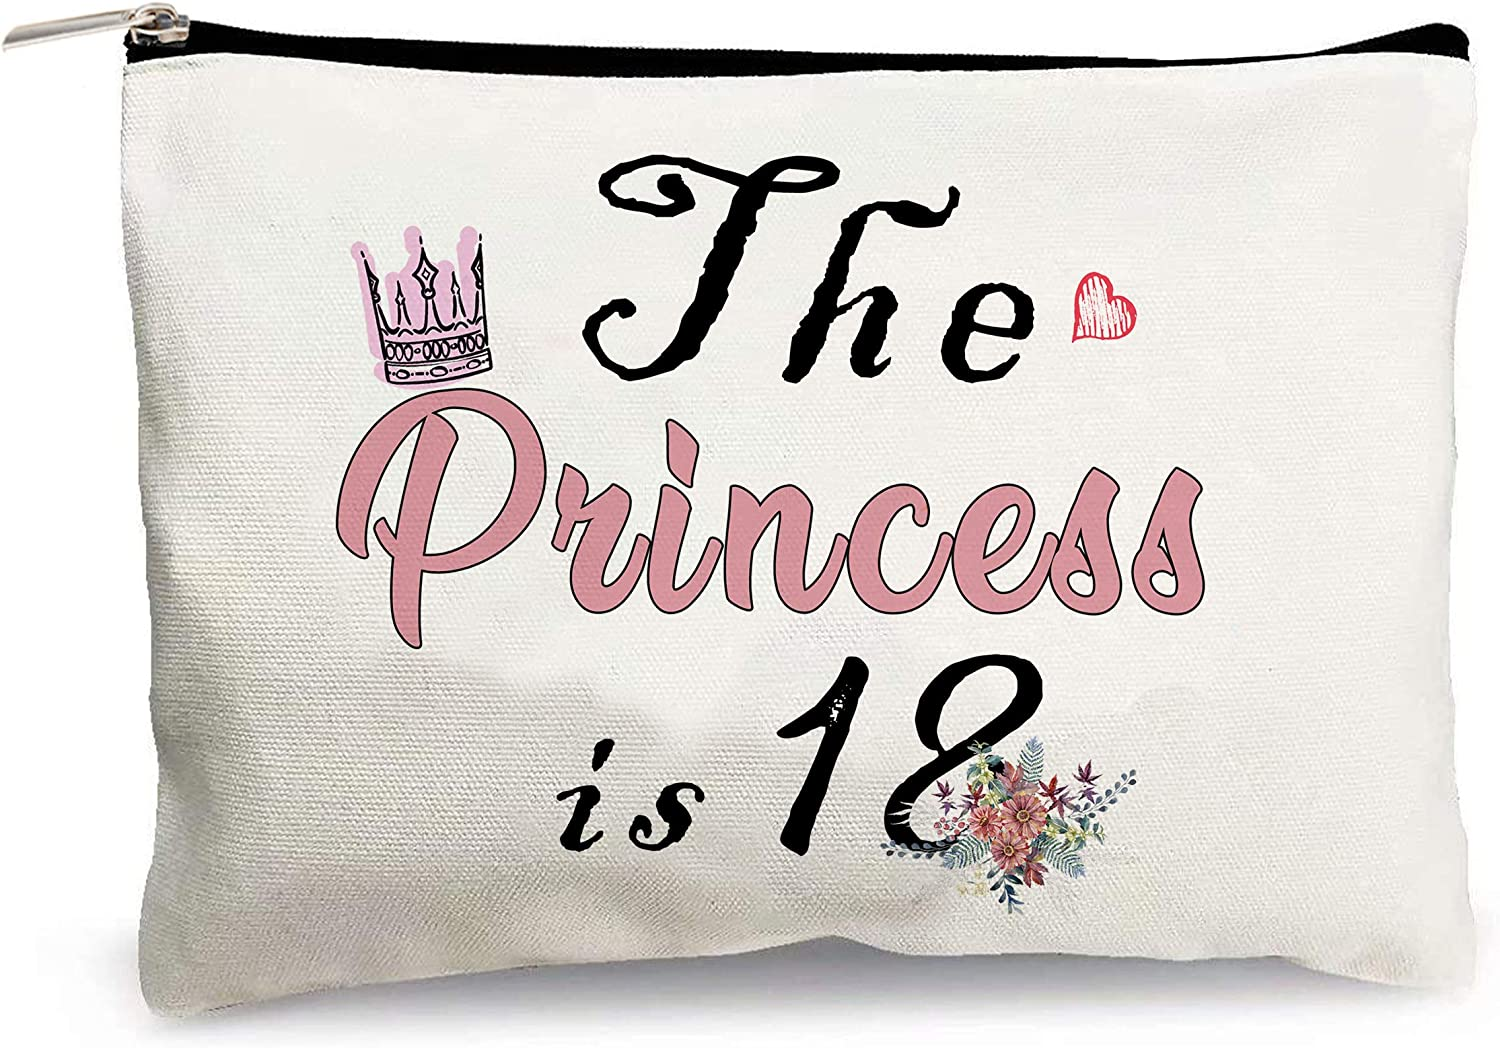 Girl Our shop OFFers the best service 18th Birthday Gift Cosmetic Bag-The is Denver Mall Fun 18 Princess Crow